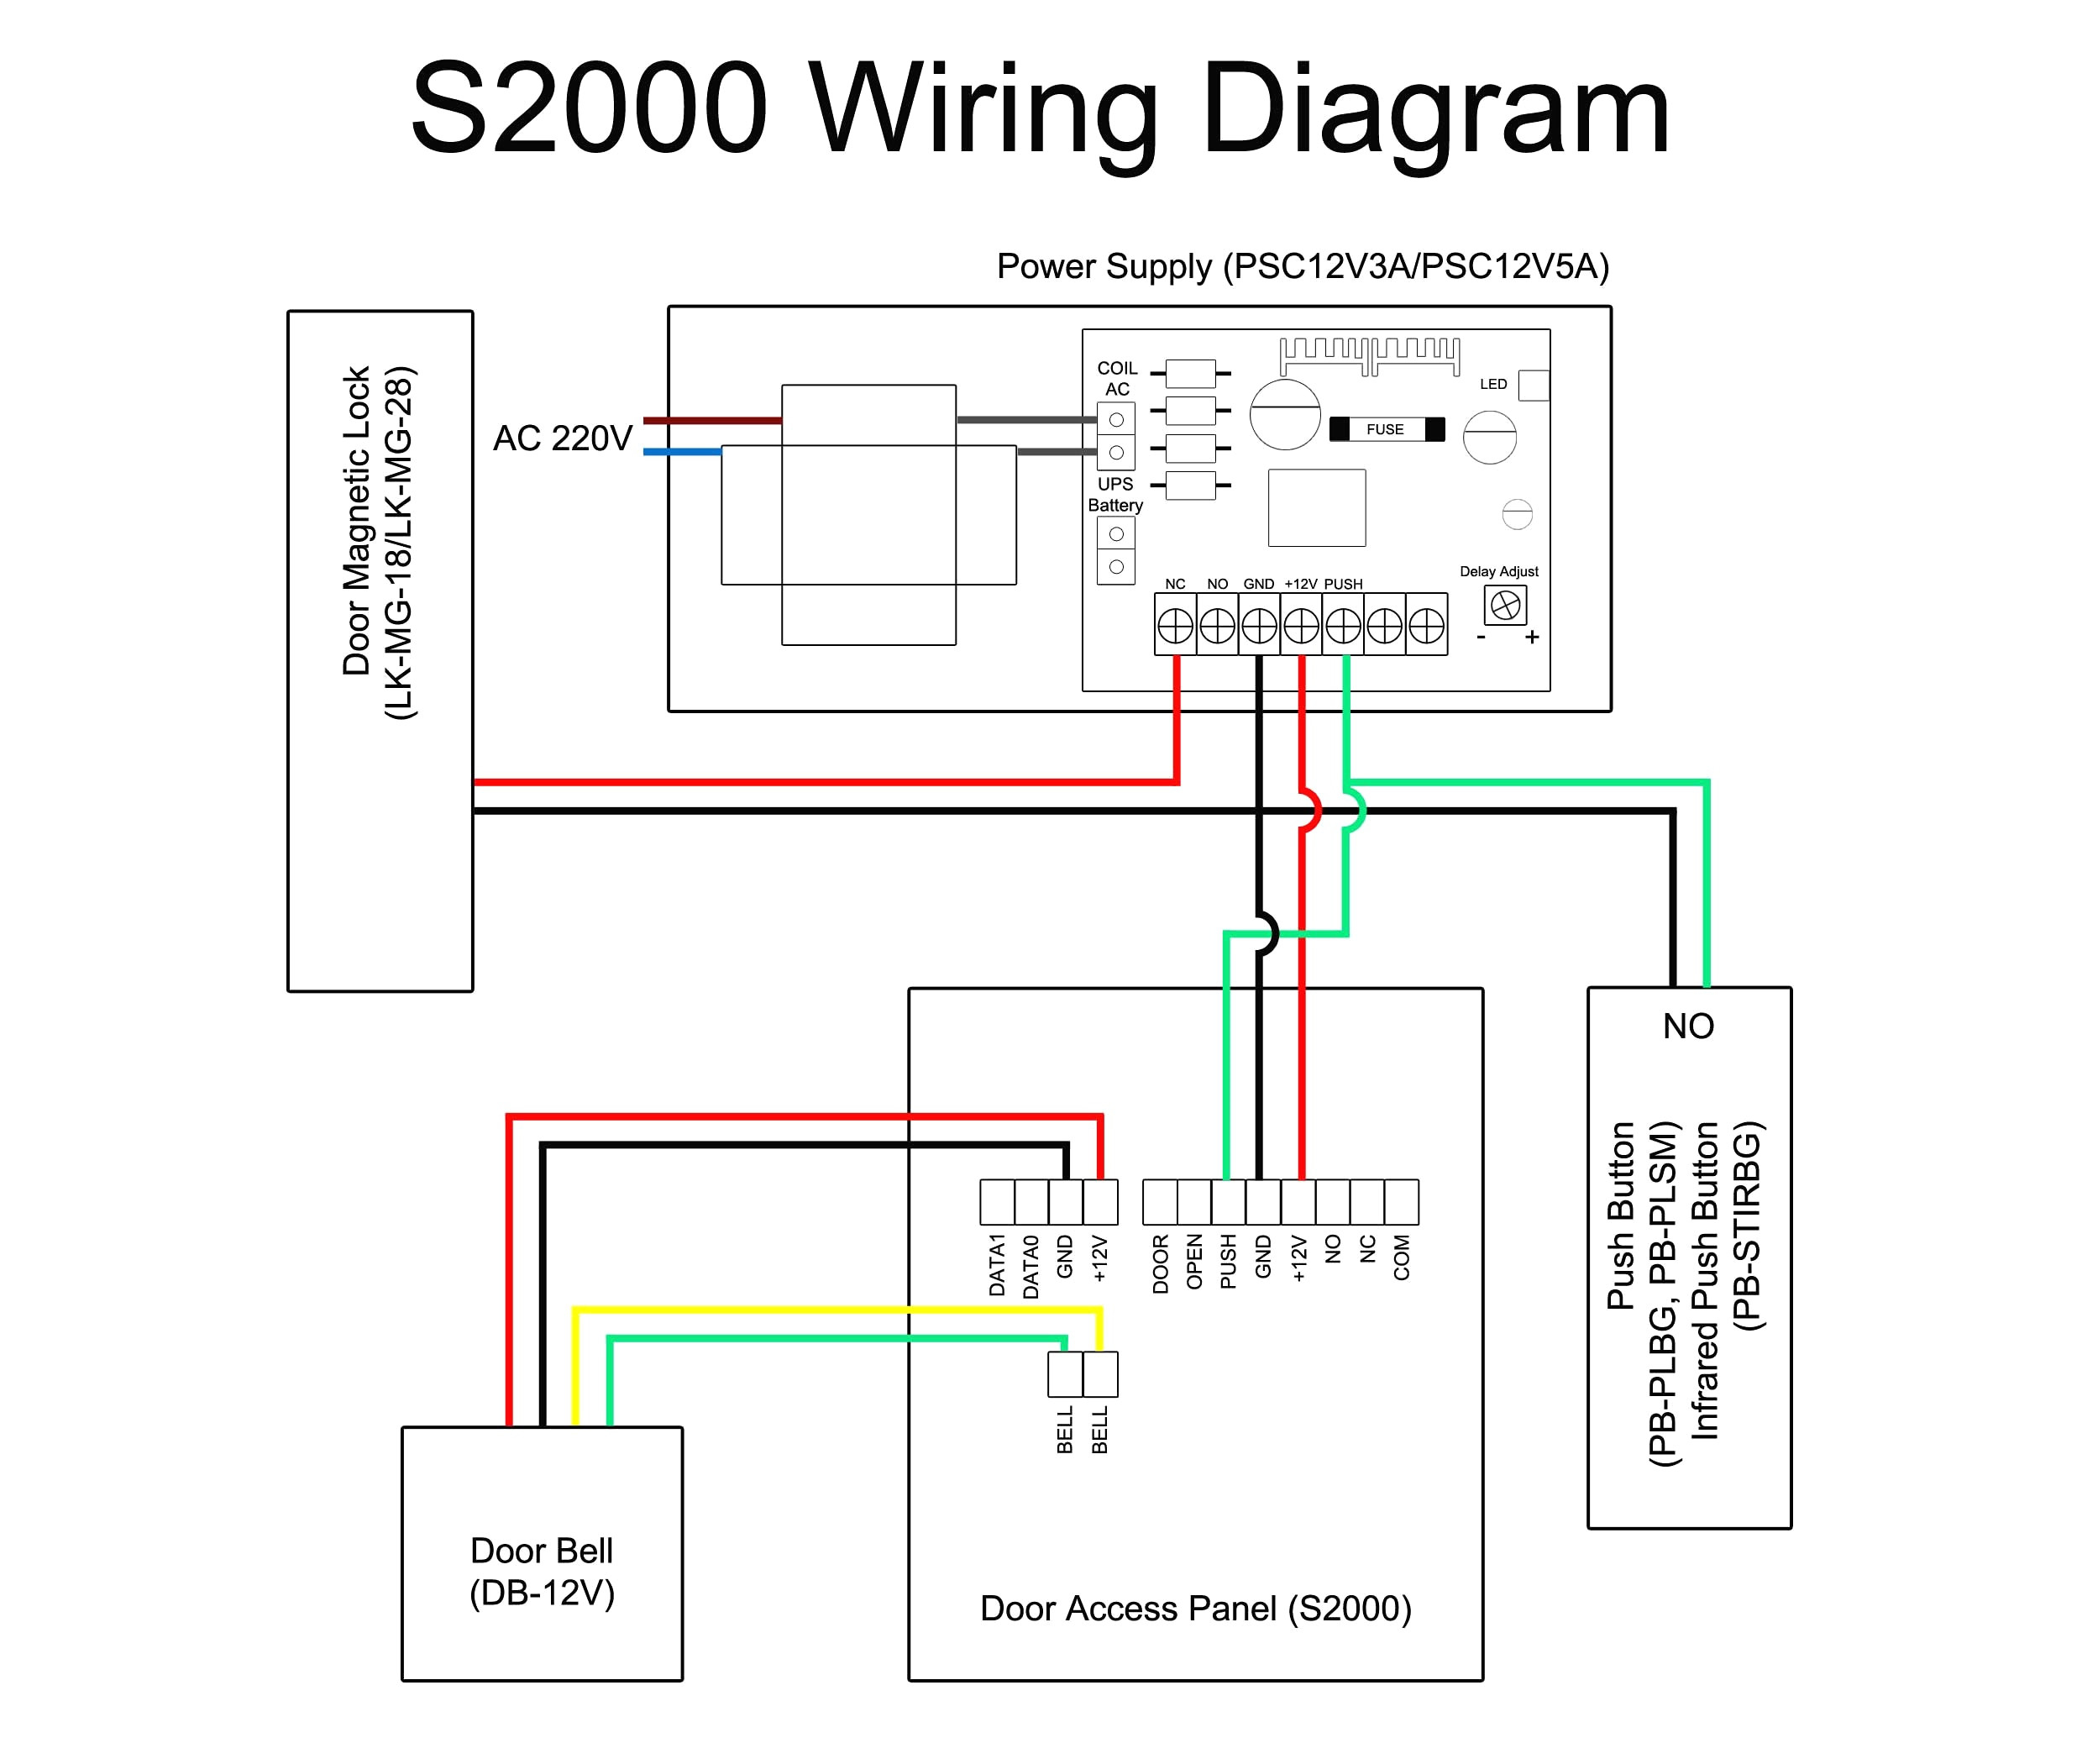 Security Alarm Wiring Diagram Volkswagen T5 Fuse Box Layout Begeboy Wiring Diagram Source